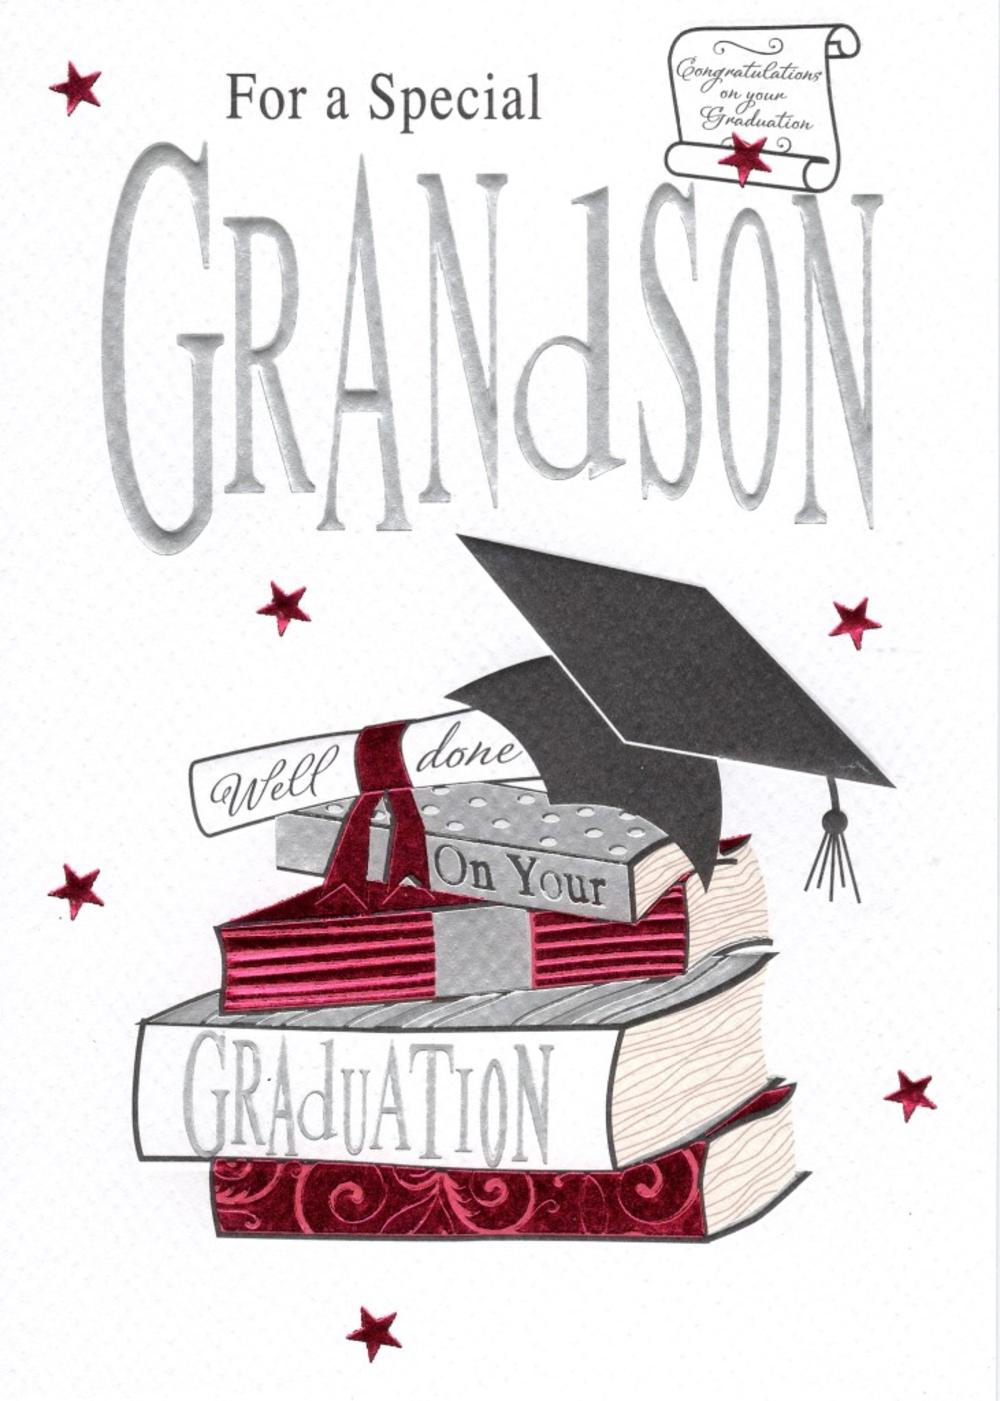 Grandson graduation greeting card cards love kates grandson graduation greeting card kristyandbryce Gallery